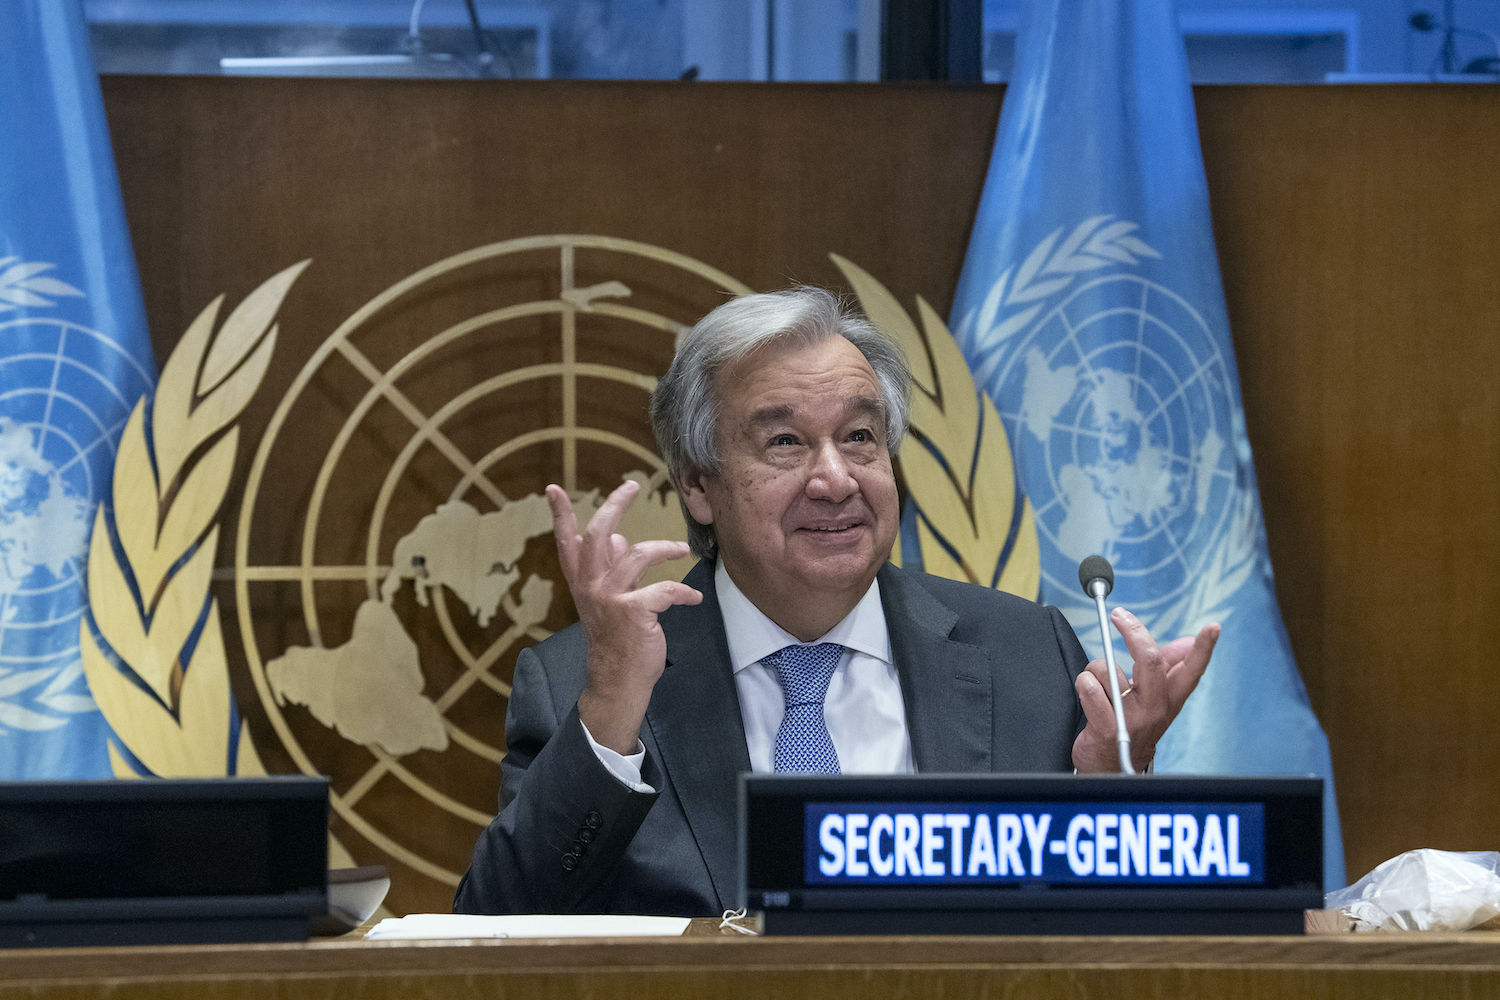 UN Secretary General Antonio Guterres at the 75th session of the United Nations General Assembly on September 29, 2020. (AFP)